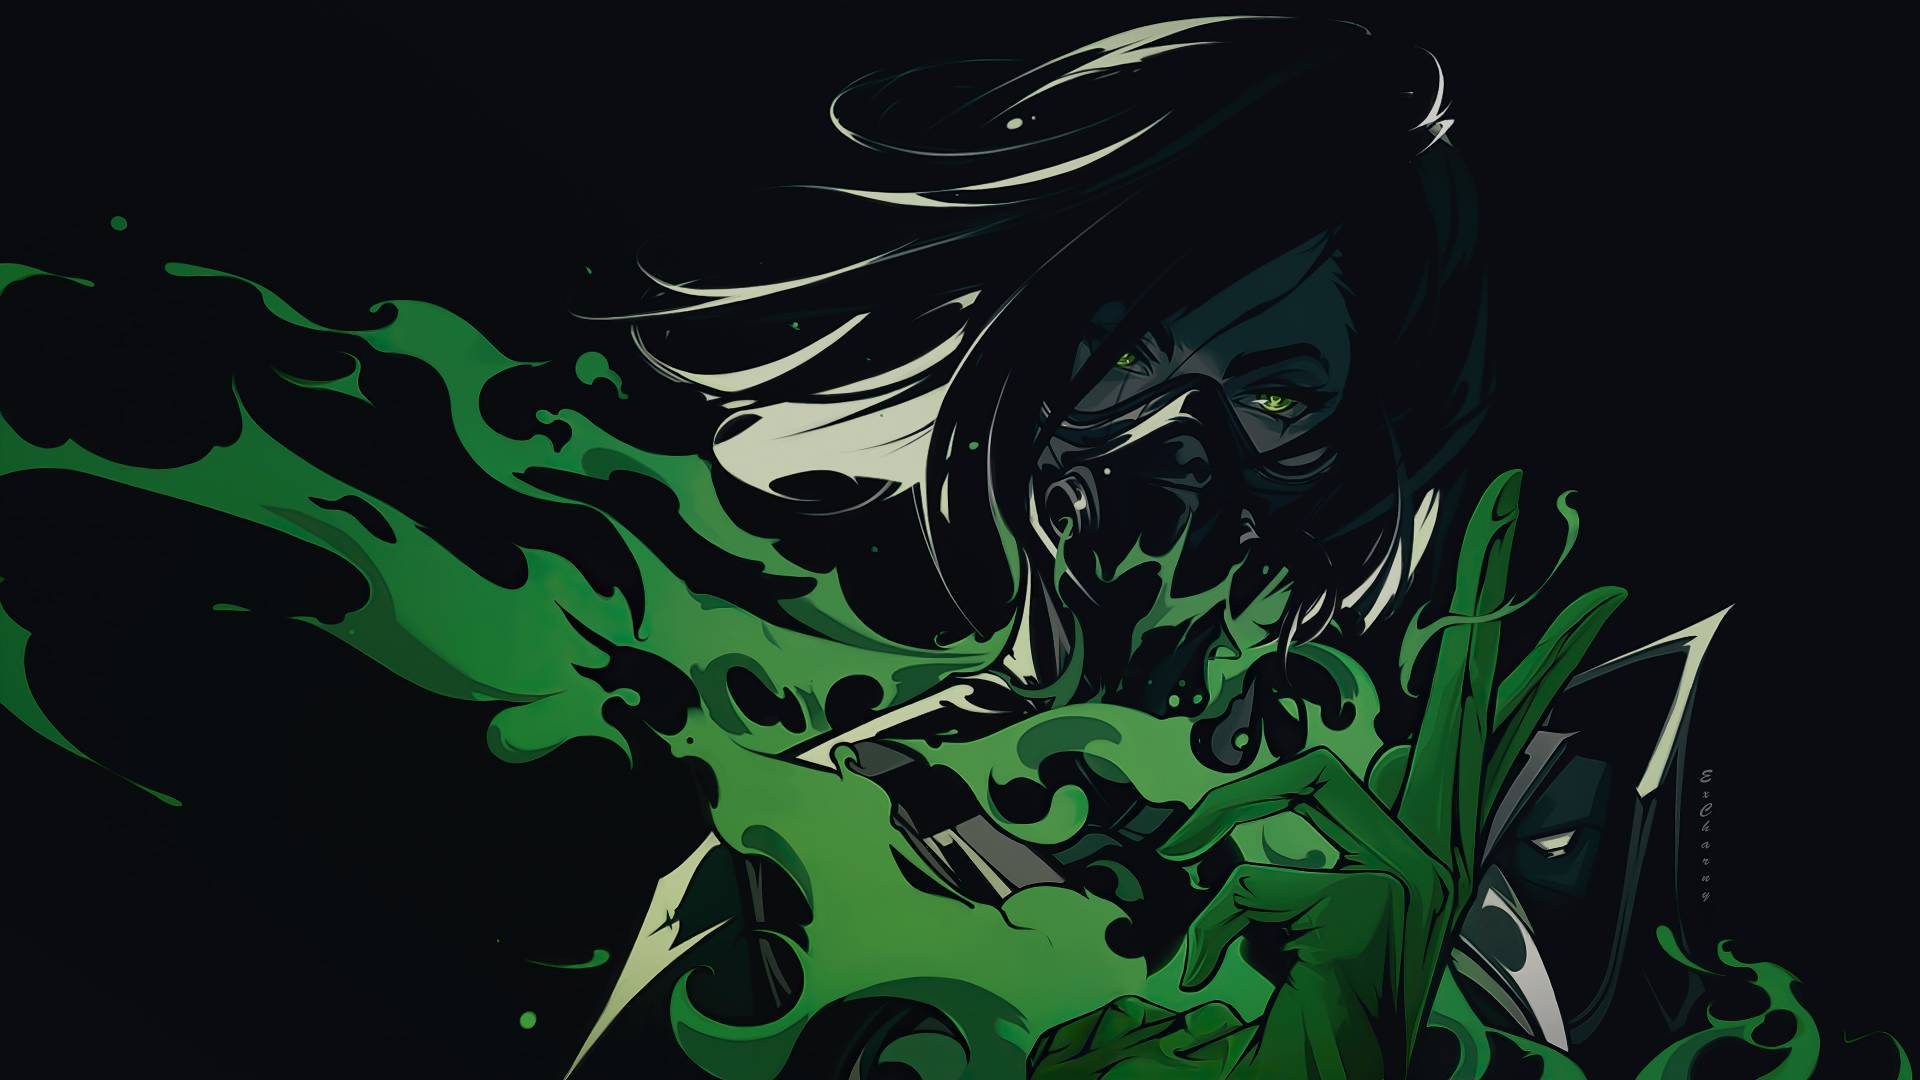 Valorant Rendered Illustrations featuring Viper with Green Toxic Aura